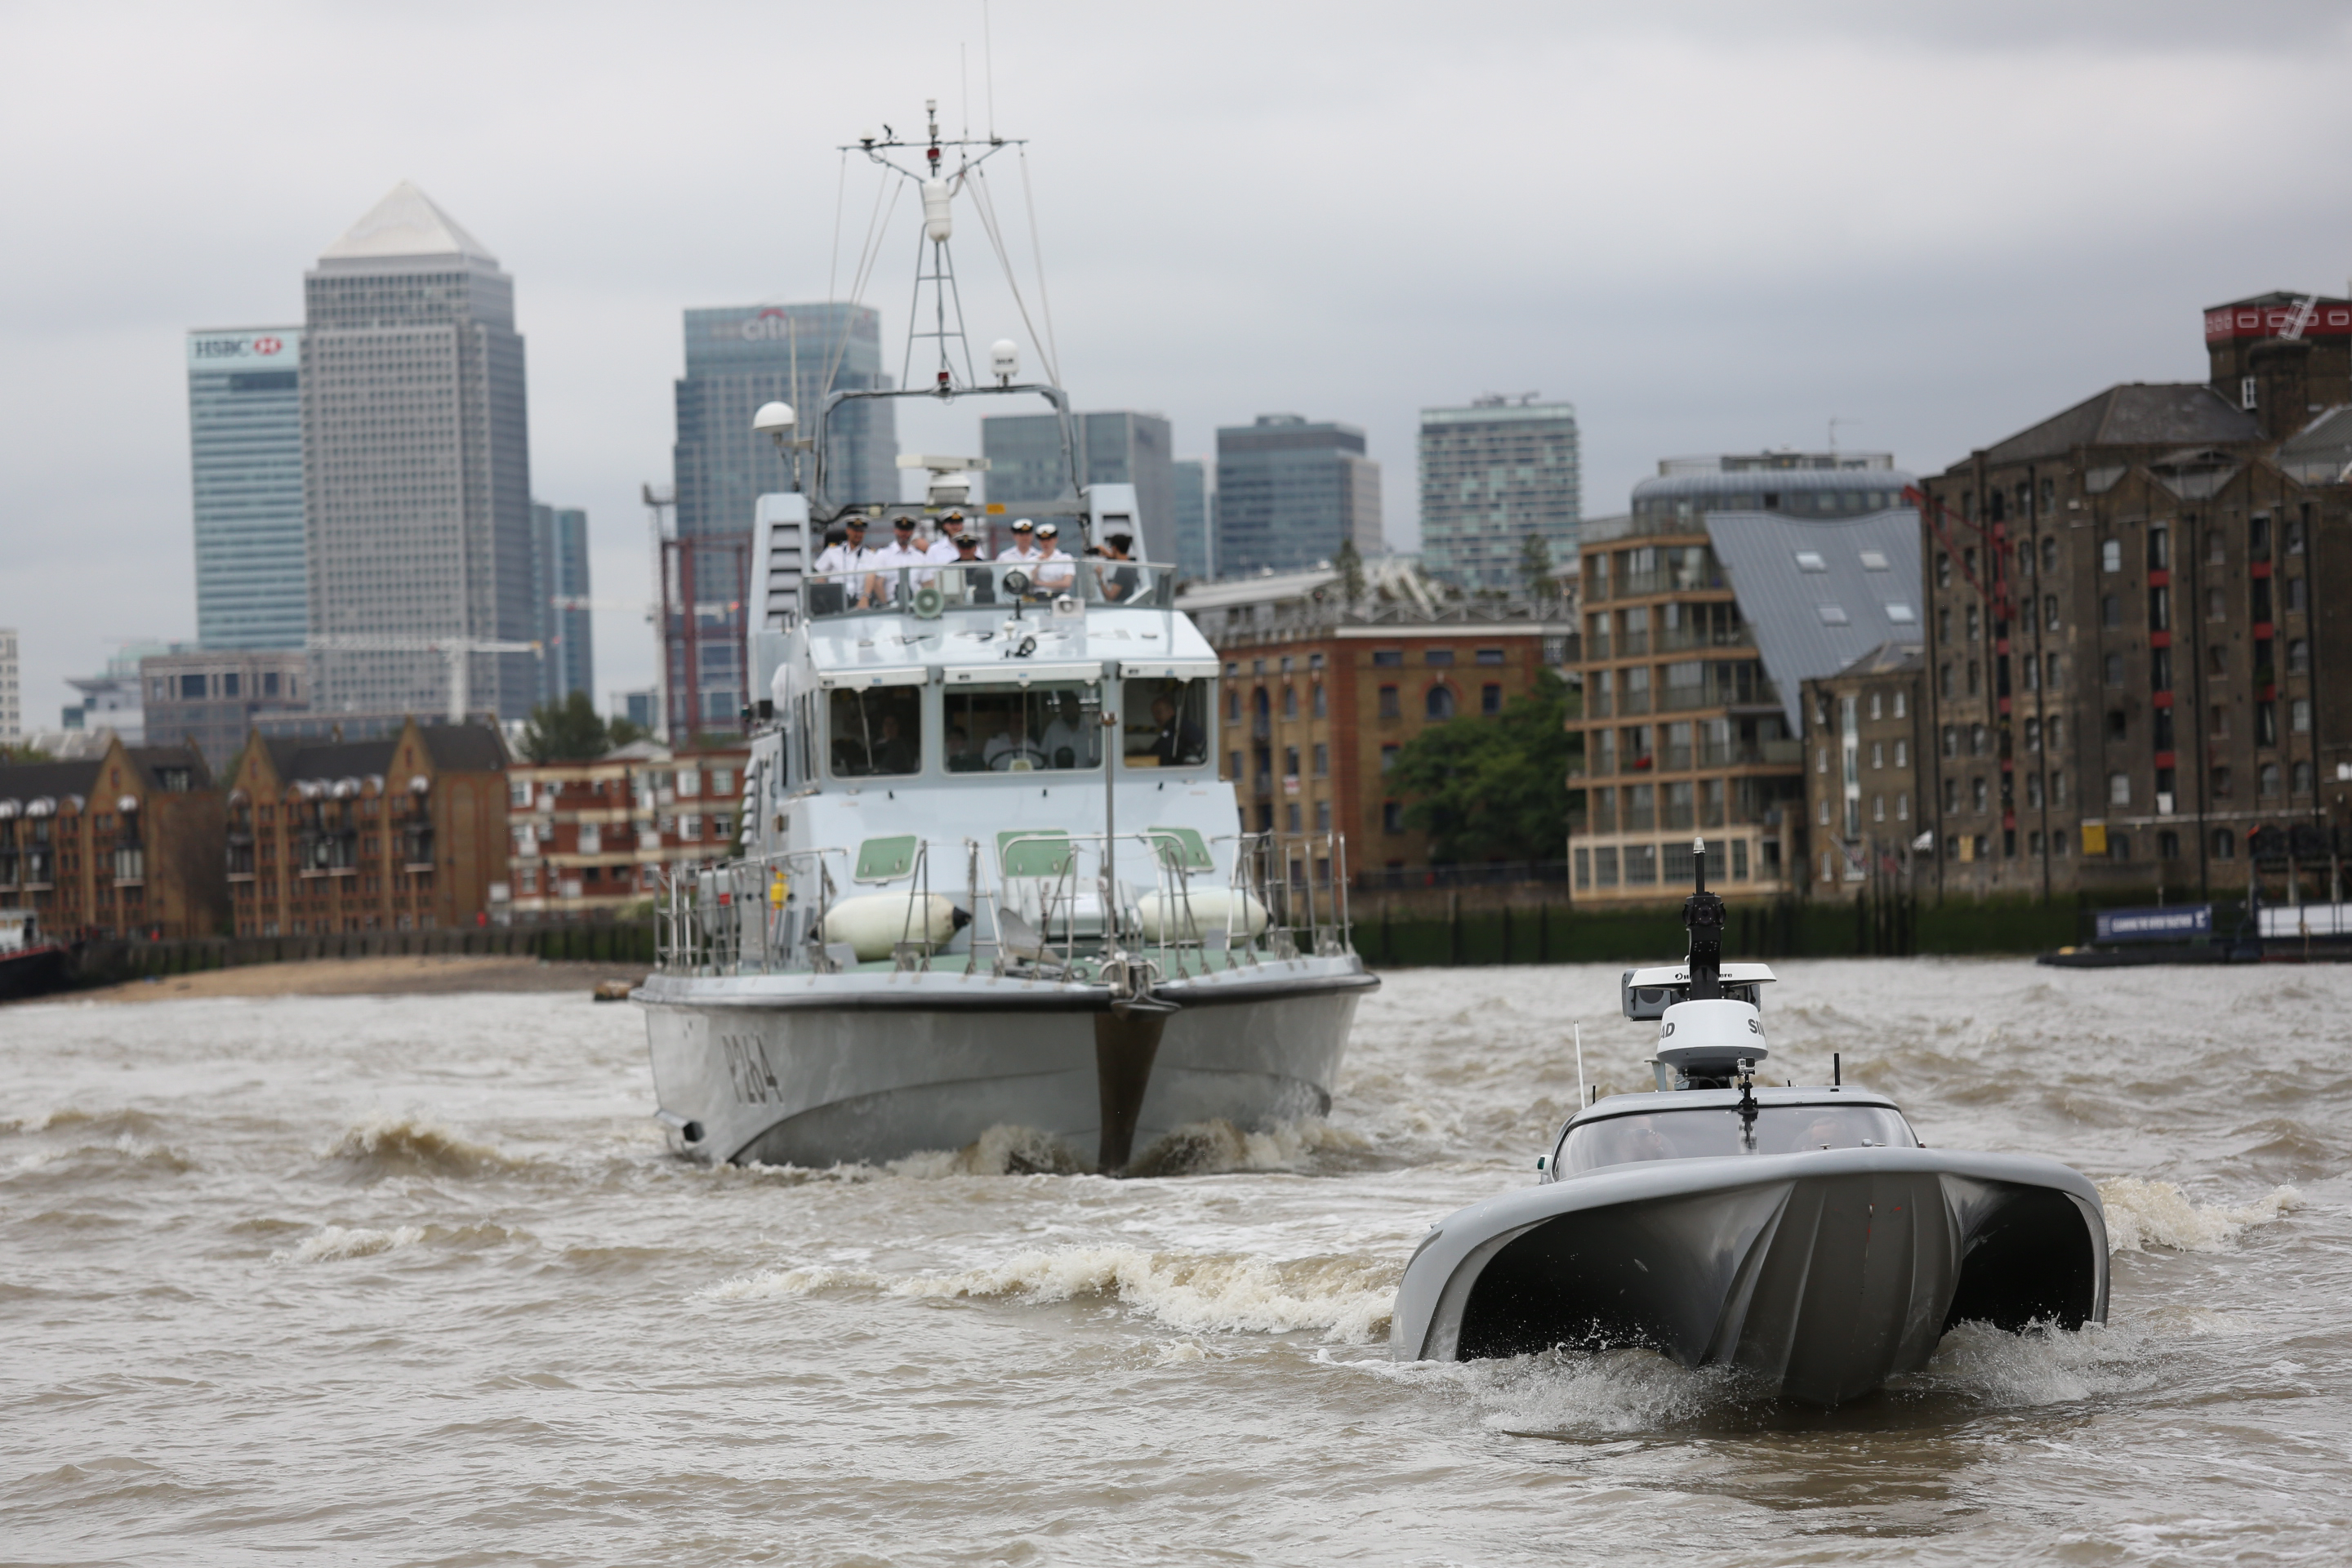 mod-mast-royal-navy-drone-boat-tower-bridge2.jpg